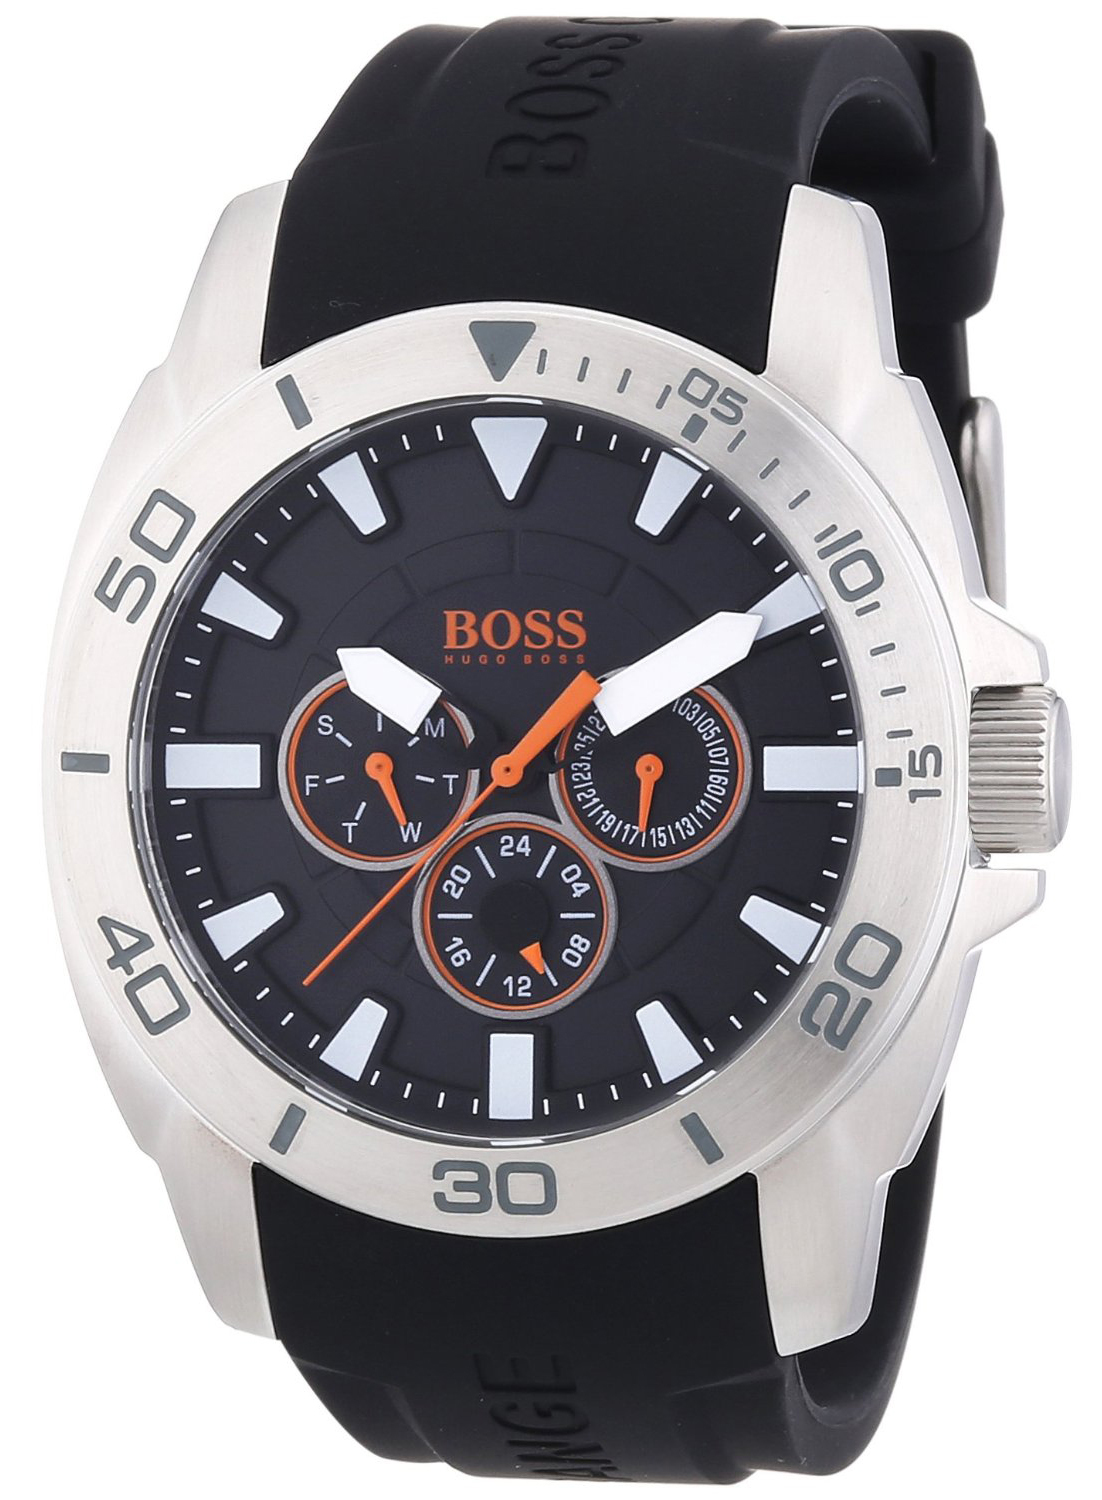 Hugo Boss 99999 Herrklocka 1512950 Svart/Gummi Ø45 mm - Hugo Boss